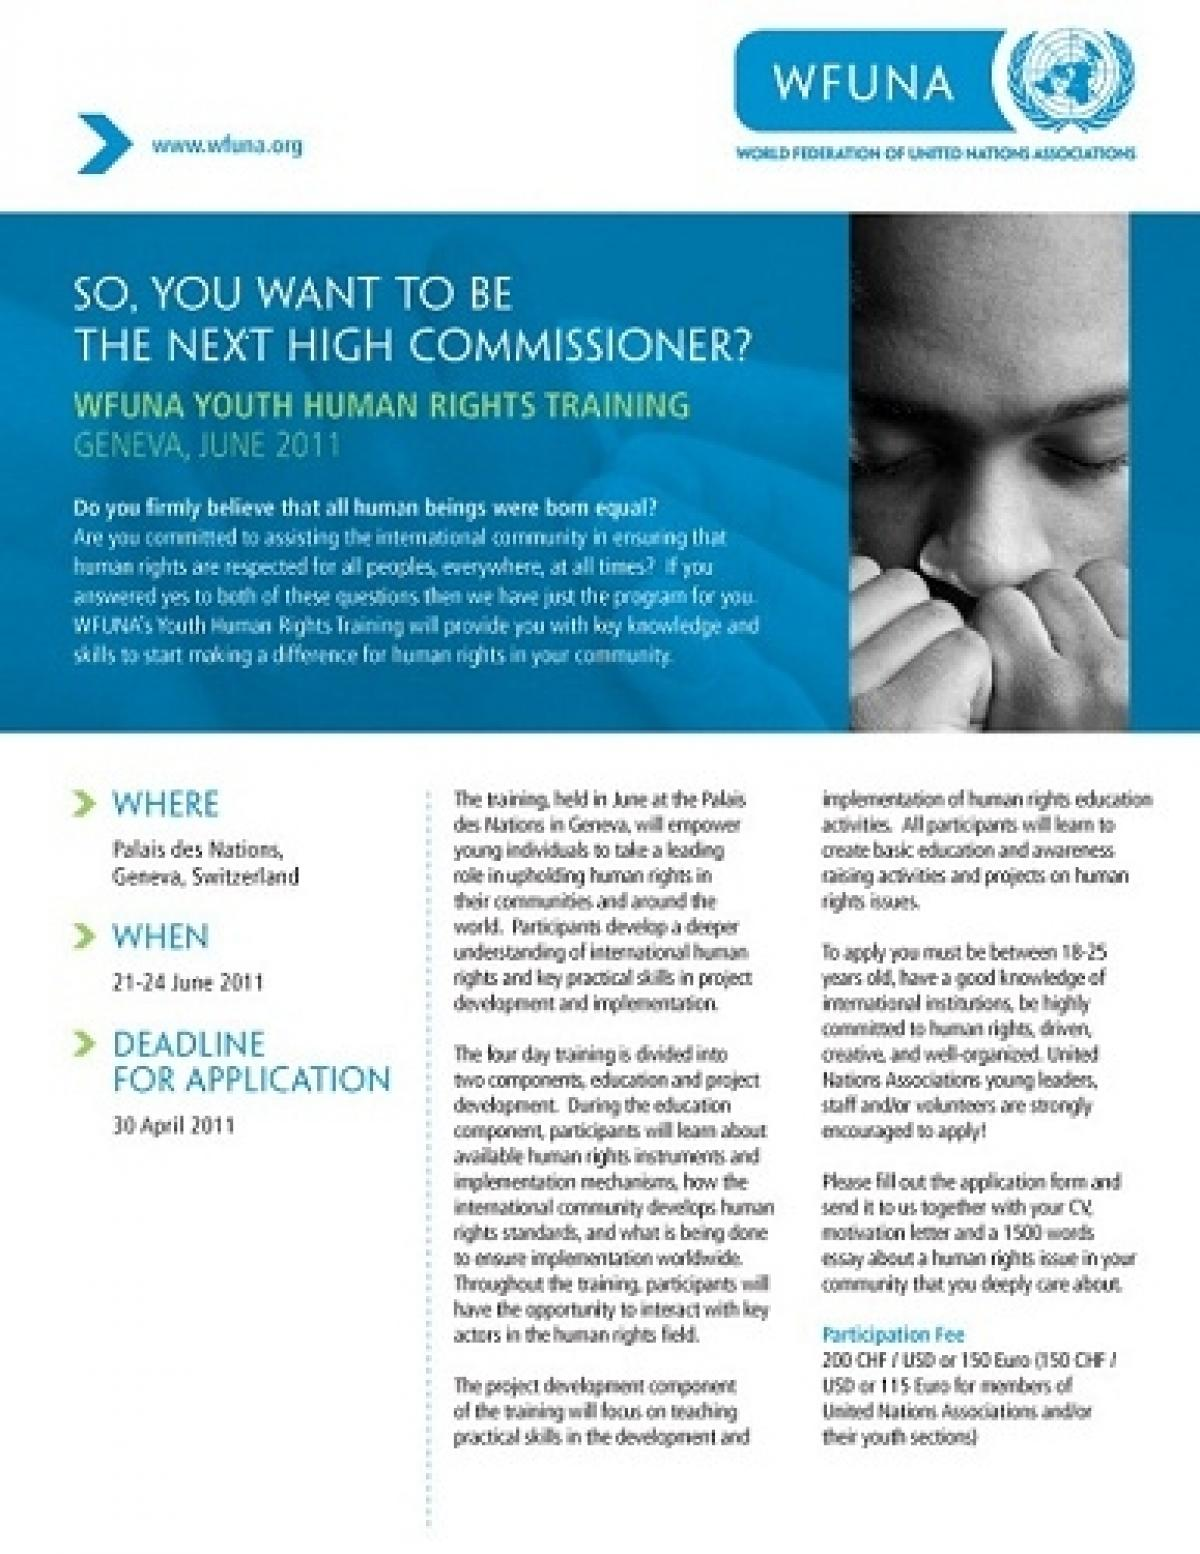 WFUNA Human Rights Youth Training